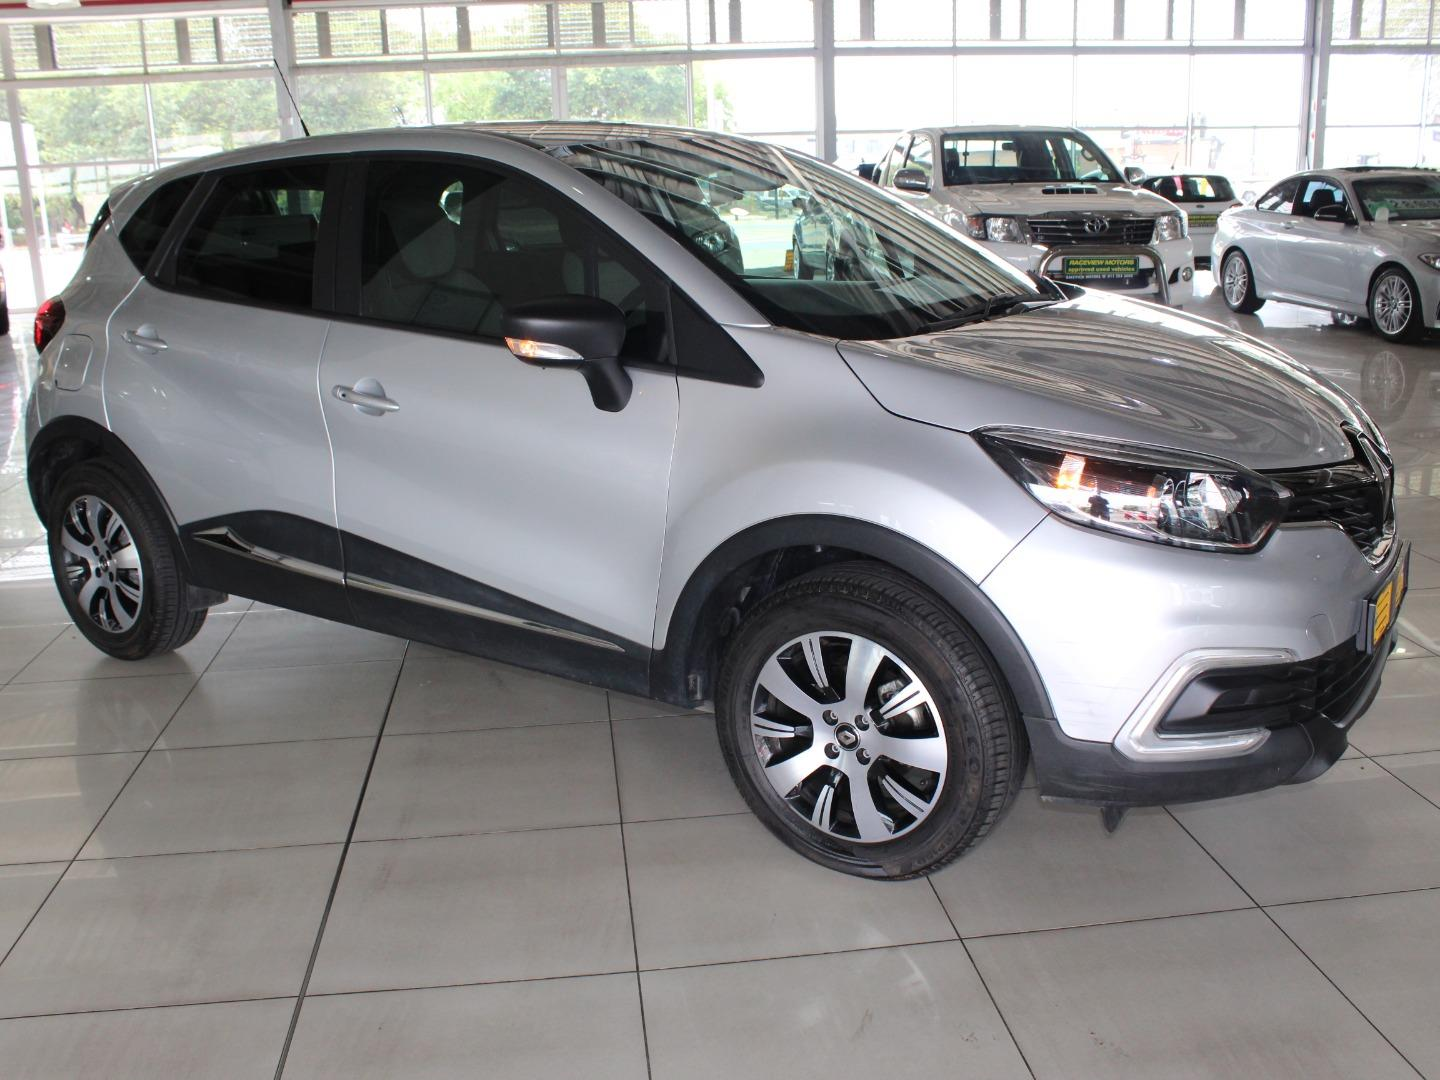 2019 Renault Captur 66kW Turbo Blaze